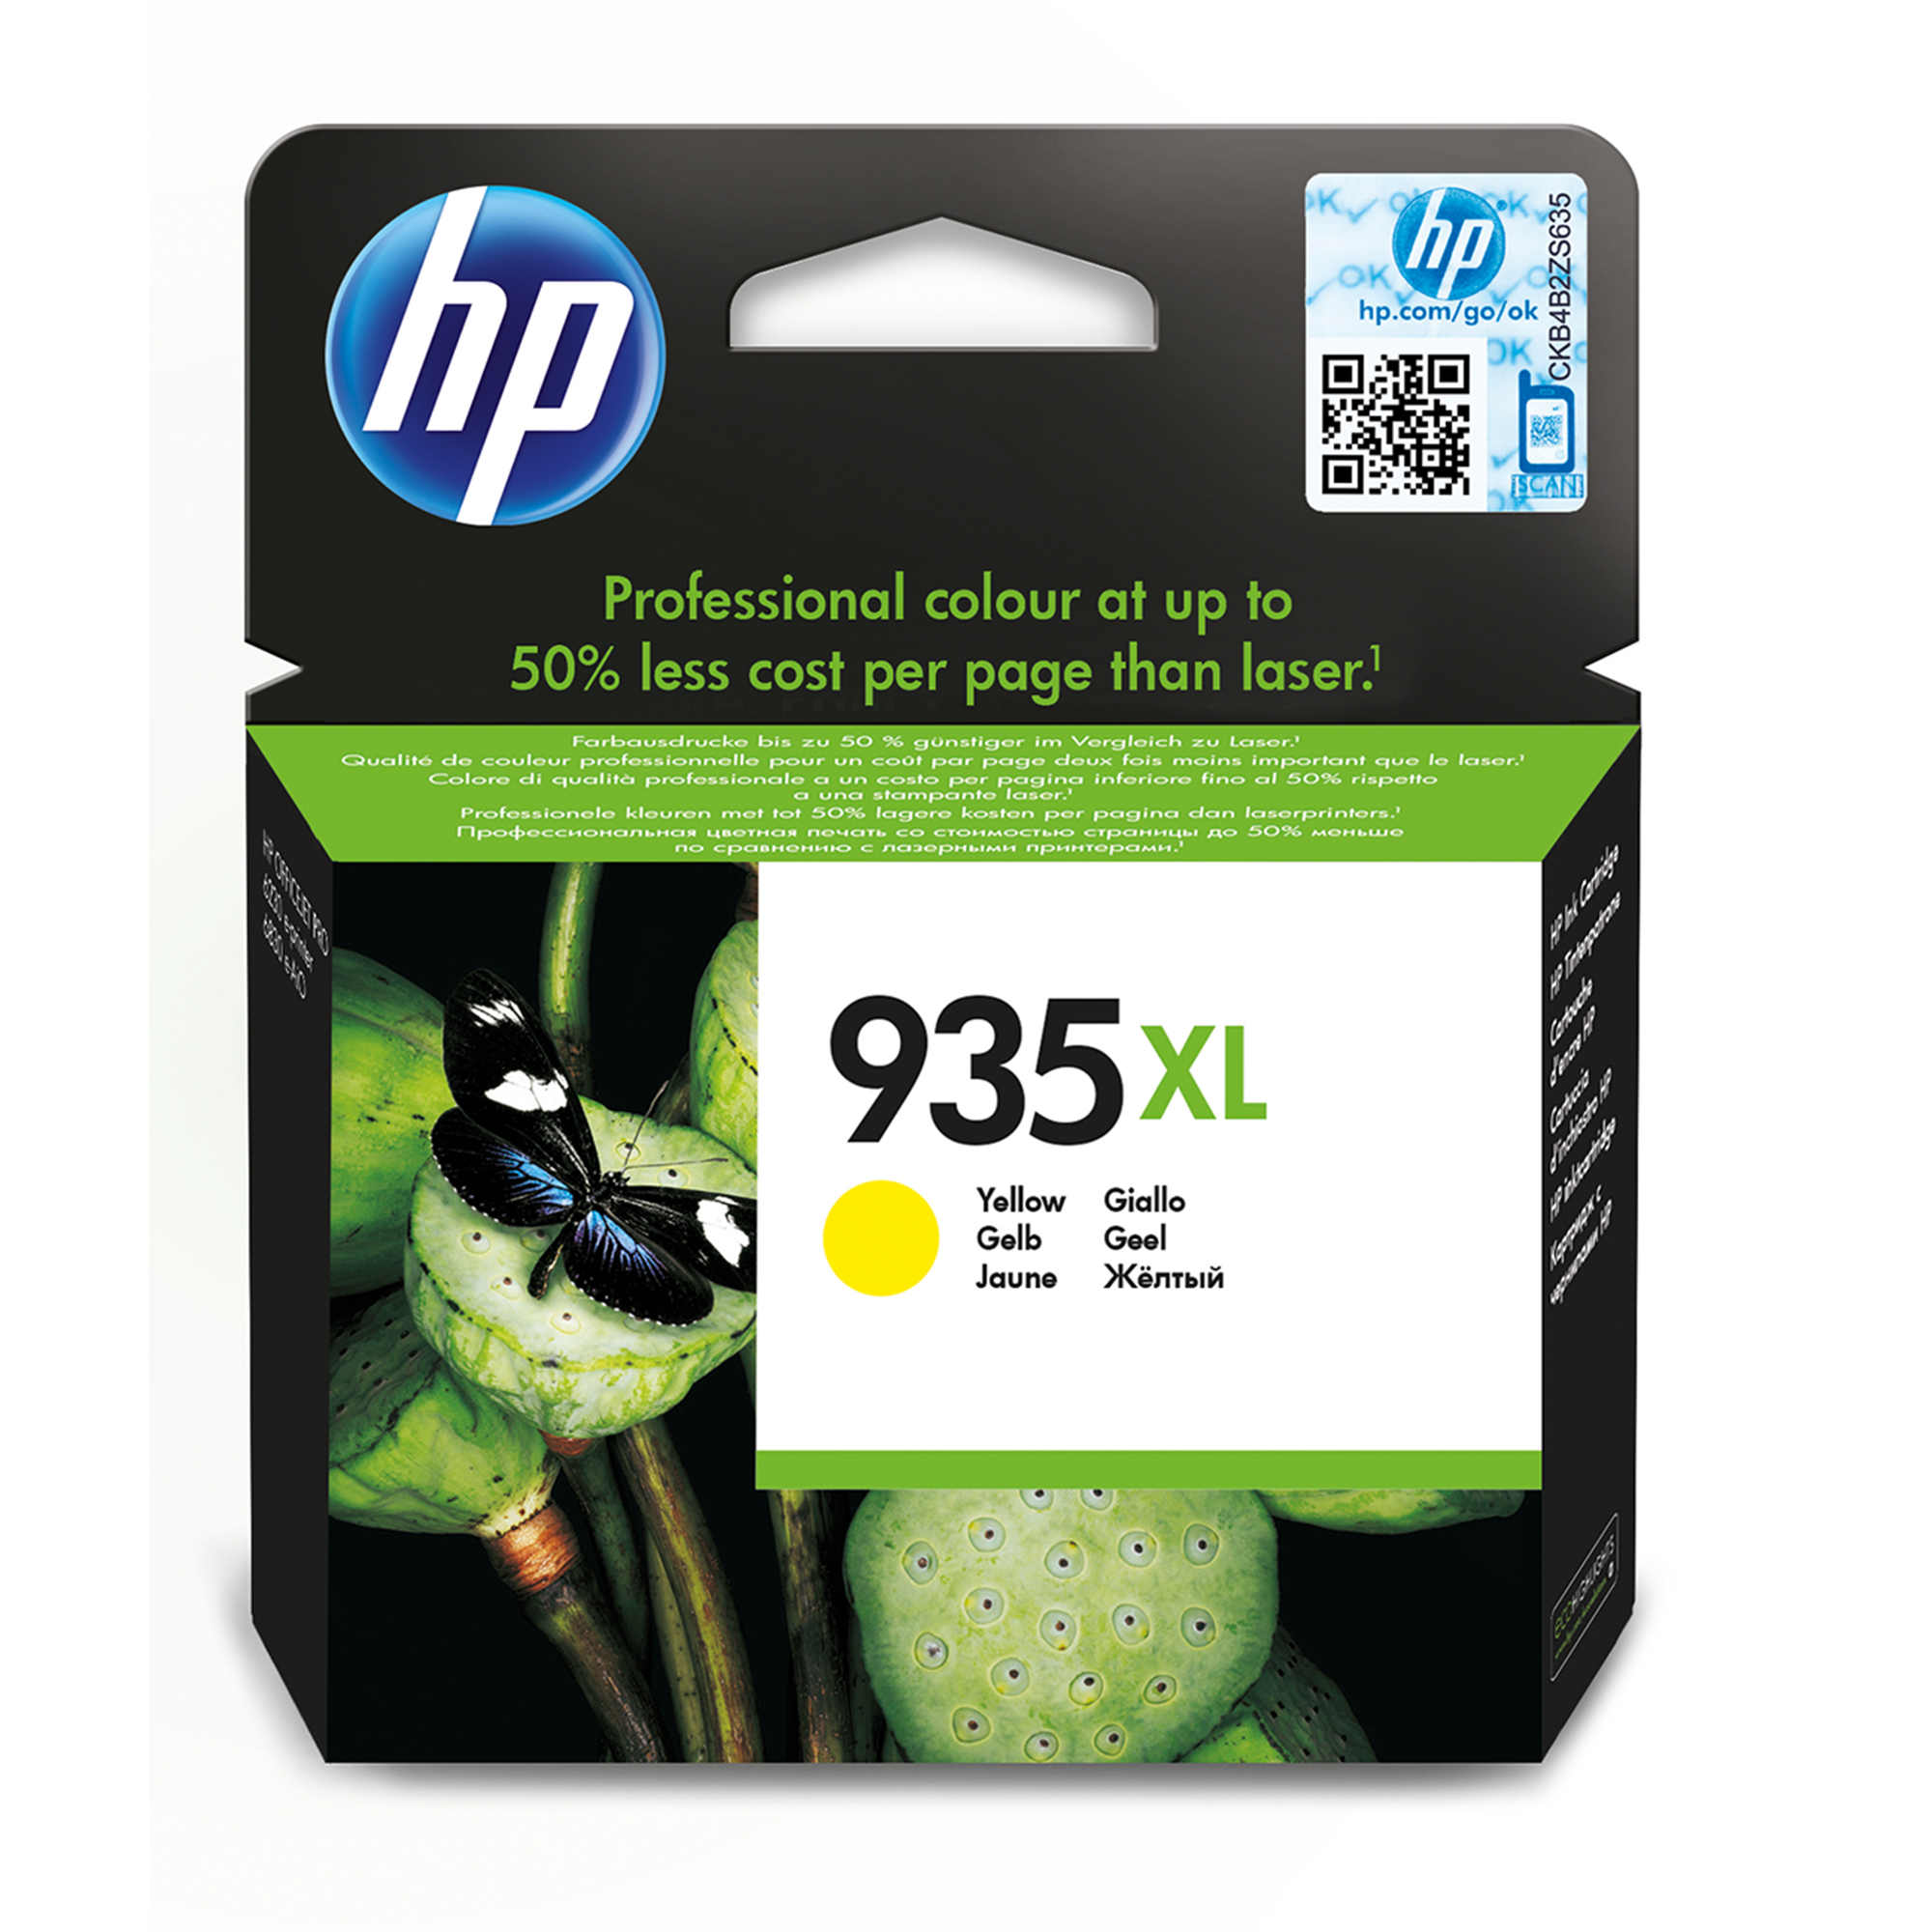 HP Hp 935xl Yellow Ink Cartridge C2p26ae - AD01